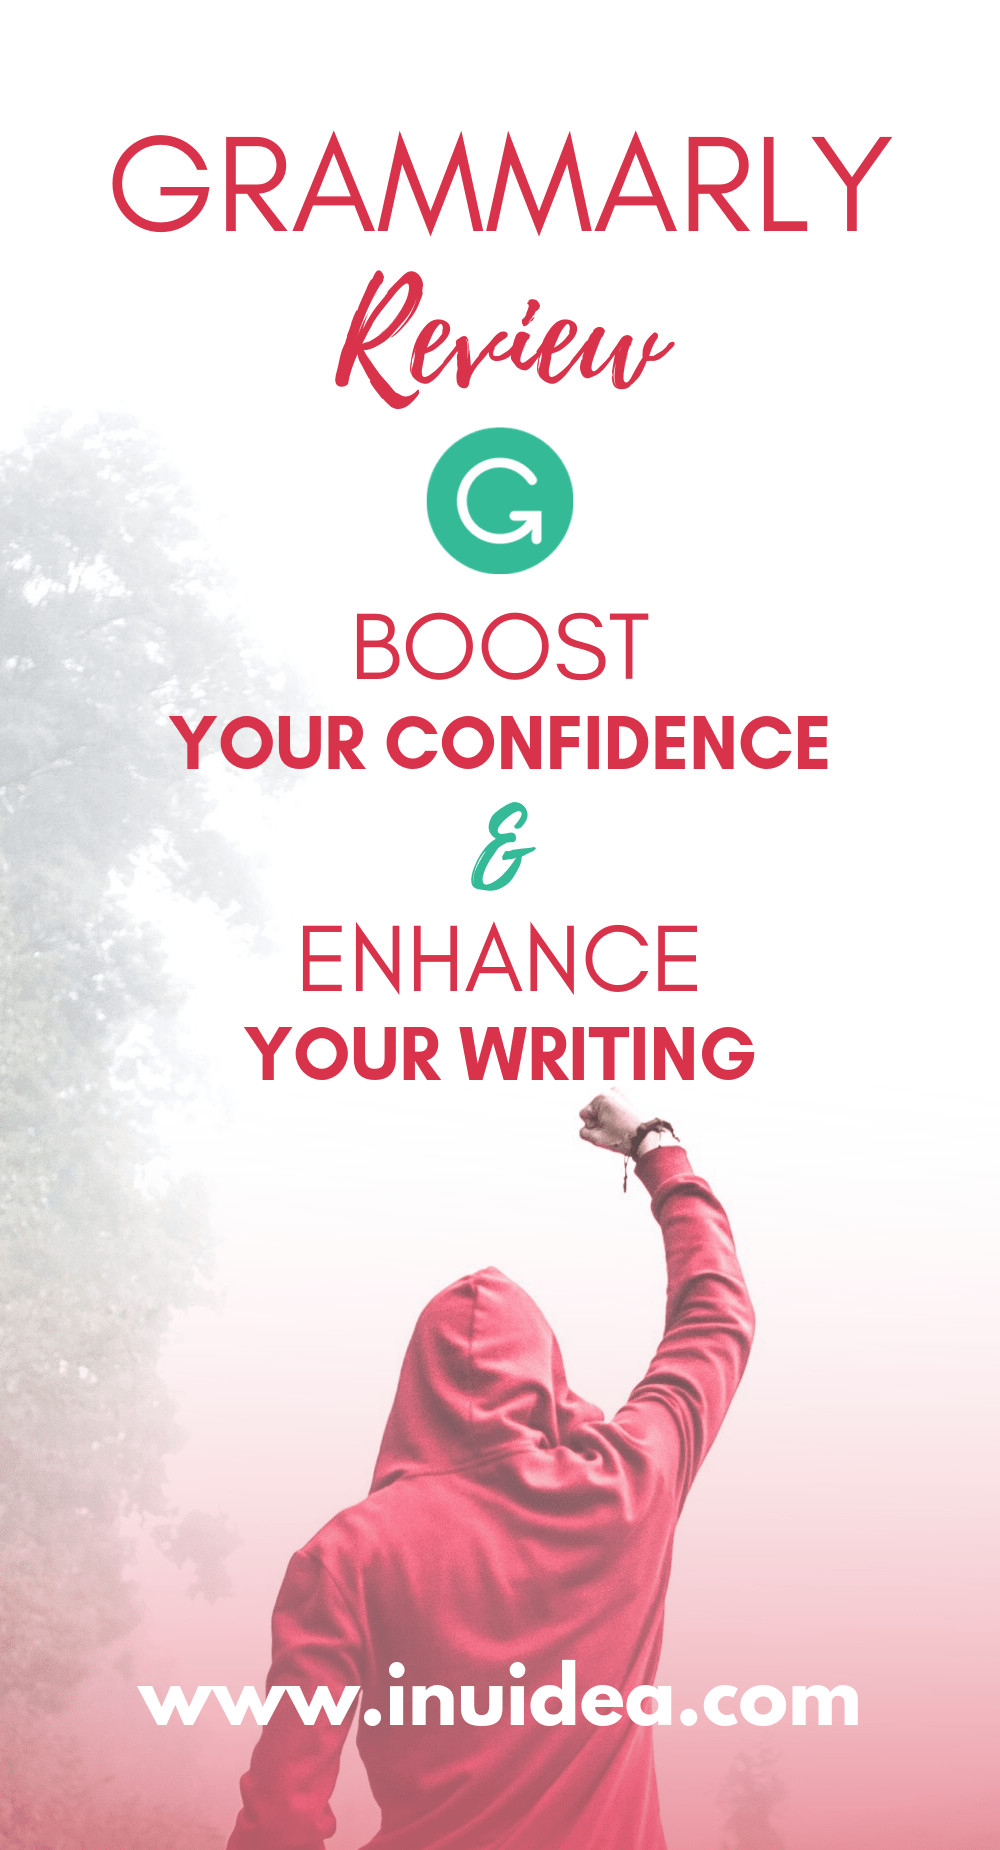 Cheap Grammarly Buy On Installments